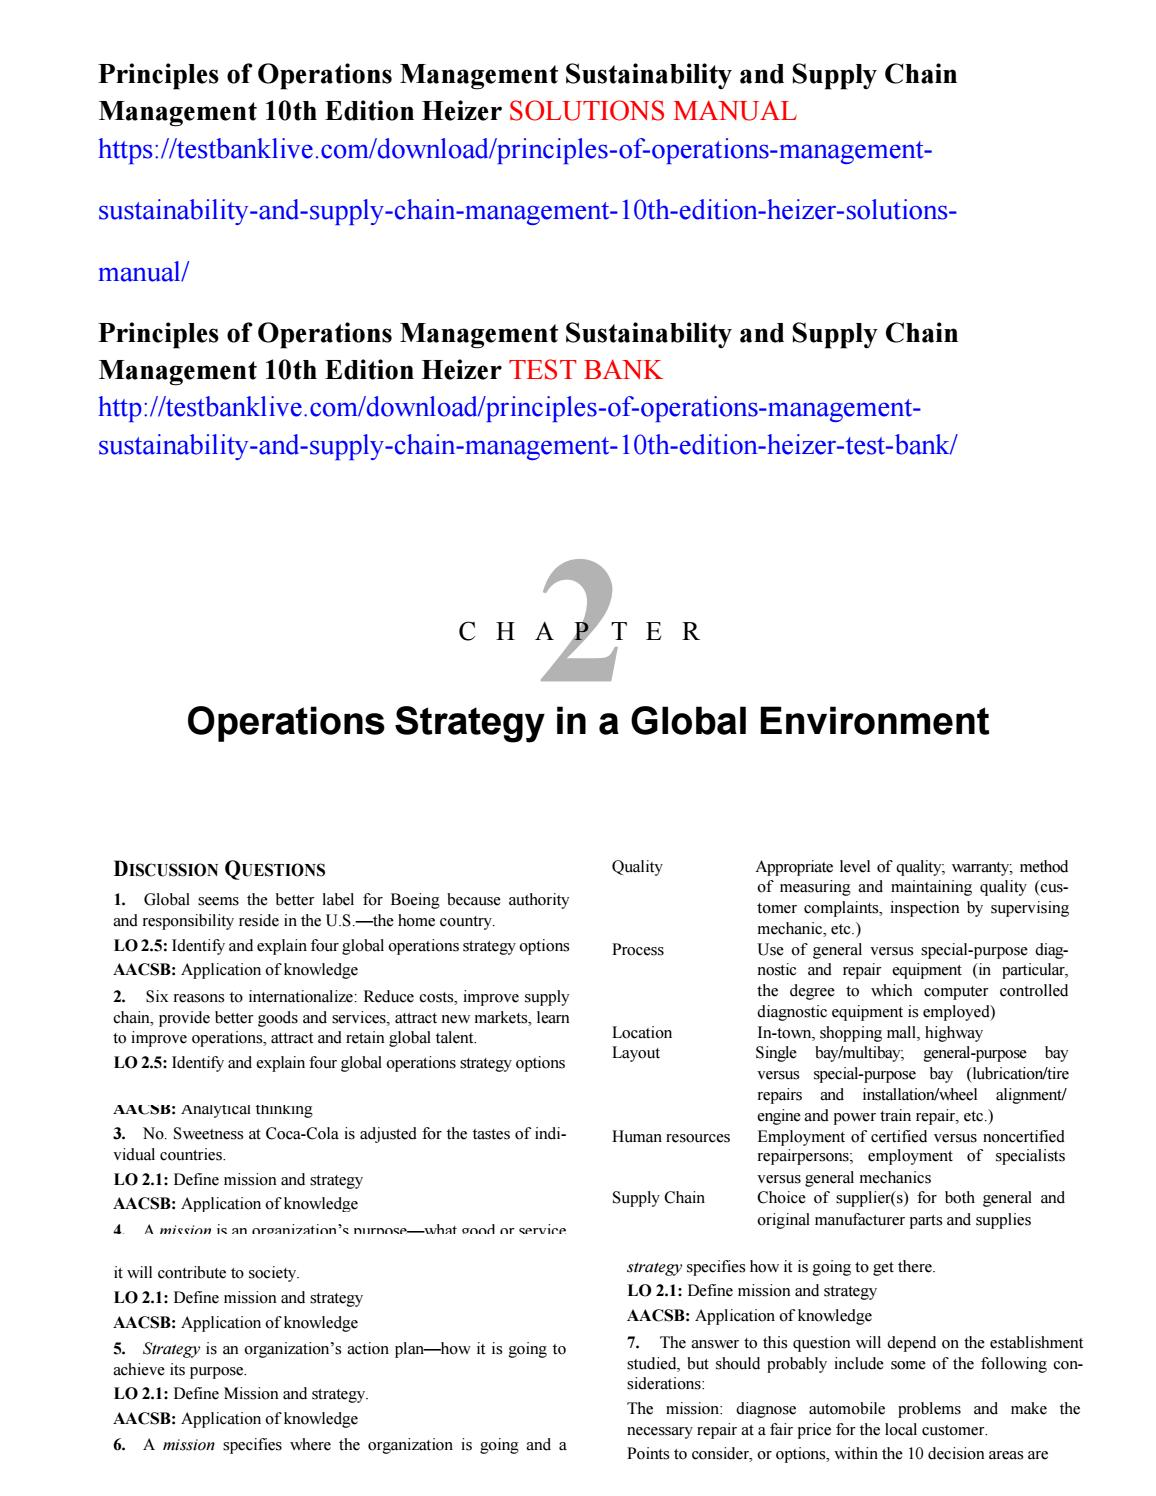 Principles of operations management sustainability and supply chain principles of operations management sustainability and supply chain management 10th edition heizer s by solomongeber issuu fandeluxe Choice Image